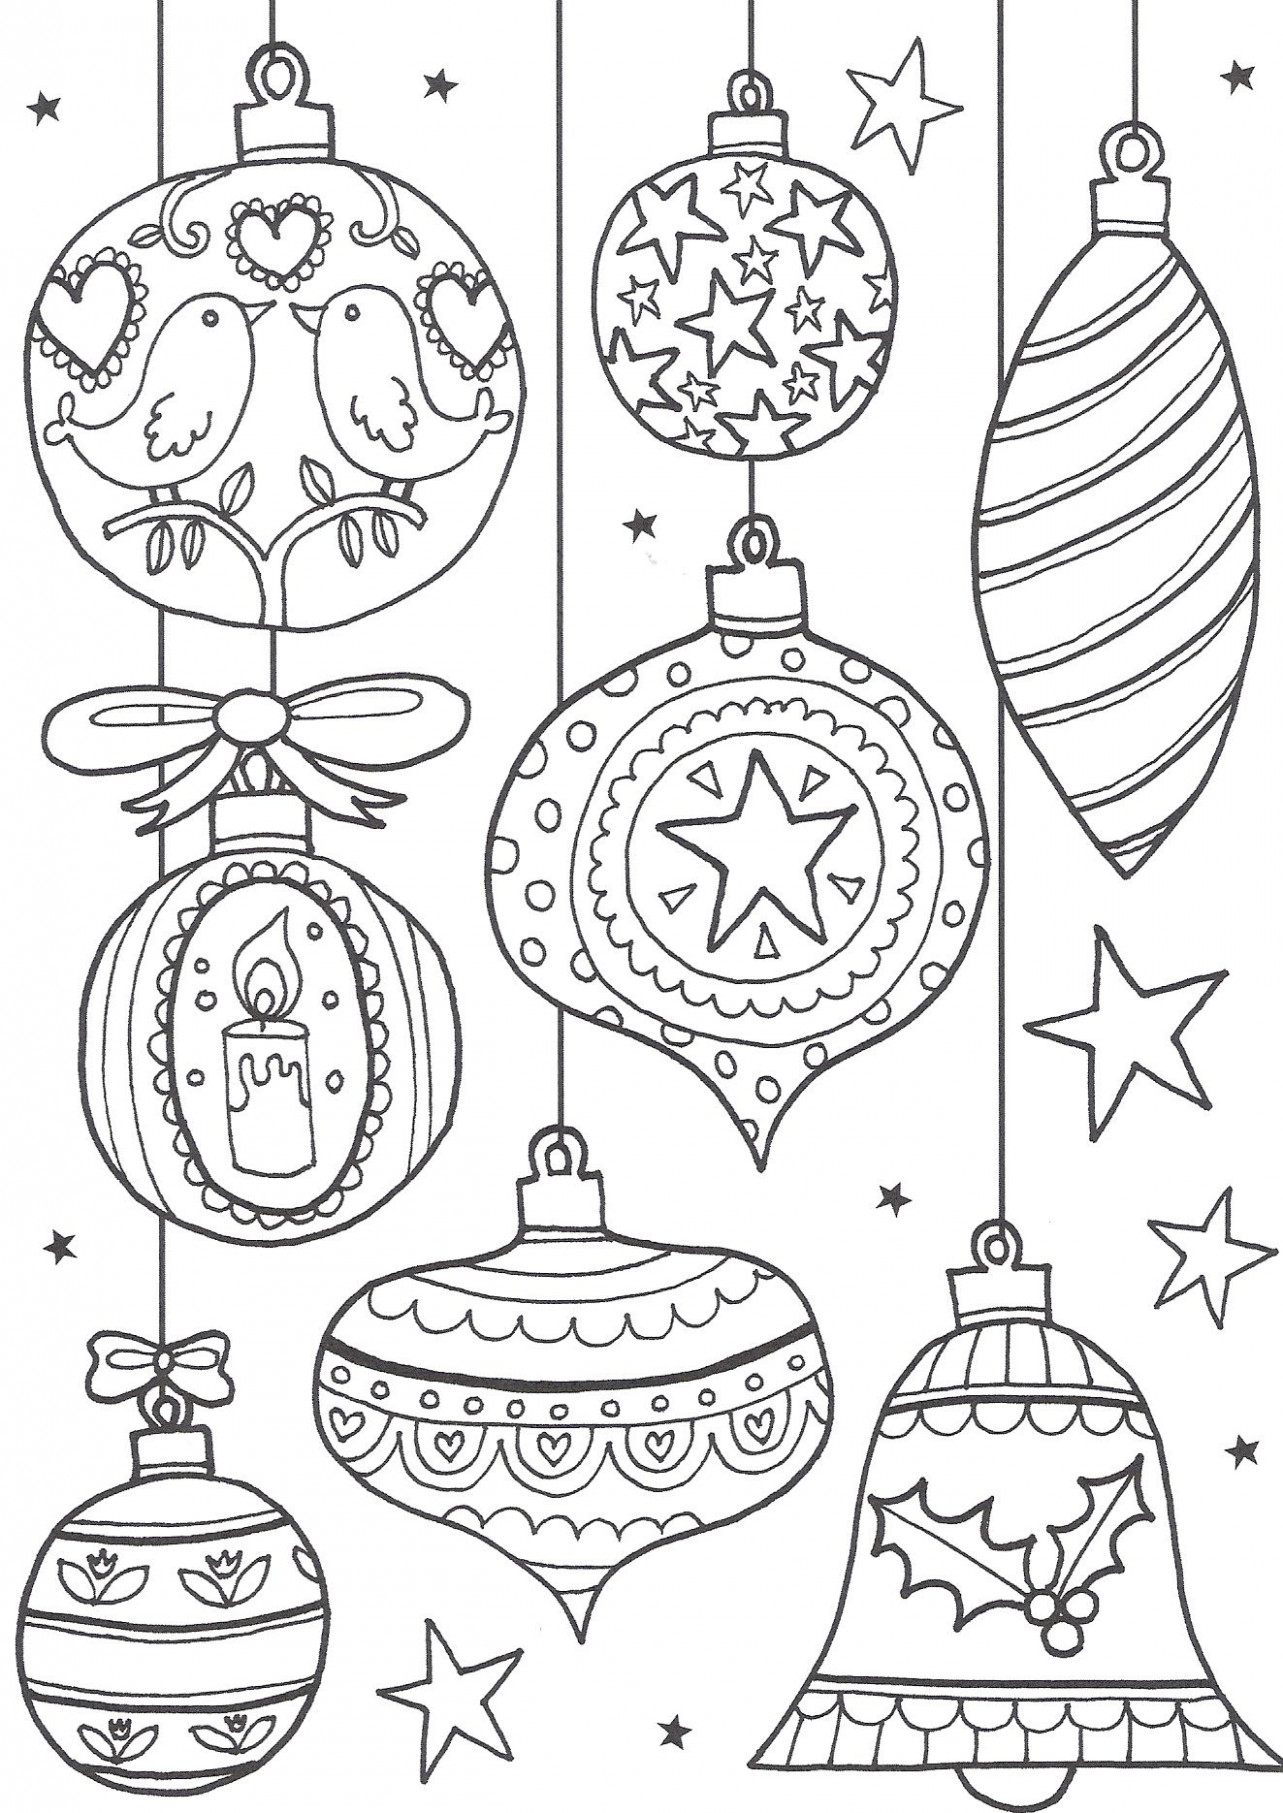 Free Christmas Colouring Pages for Adults – The Ultimate Roundup ...